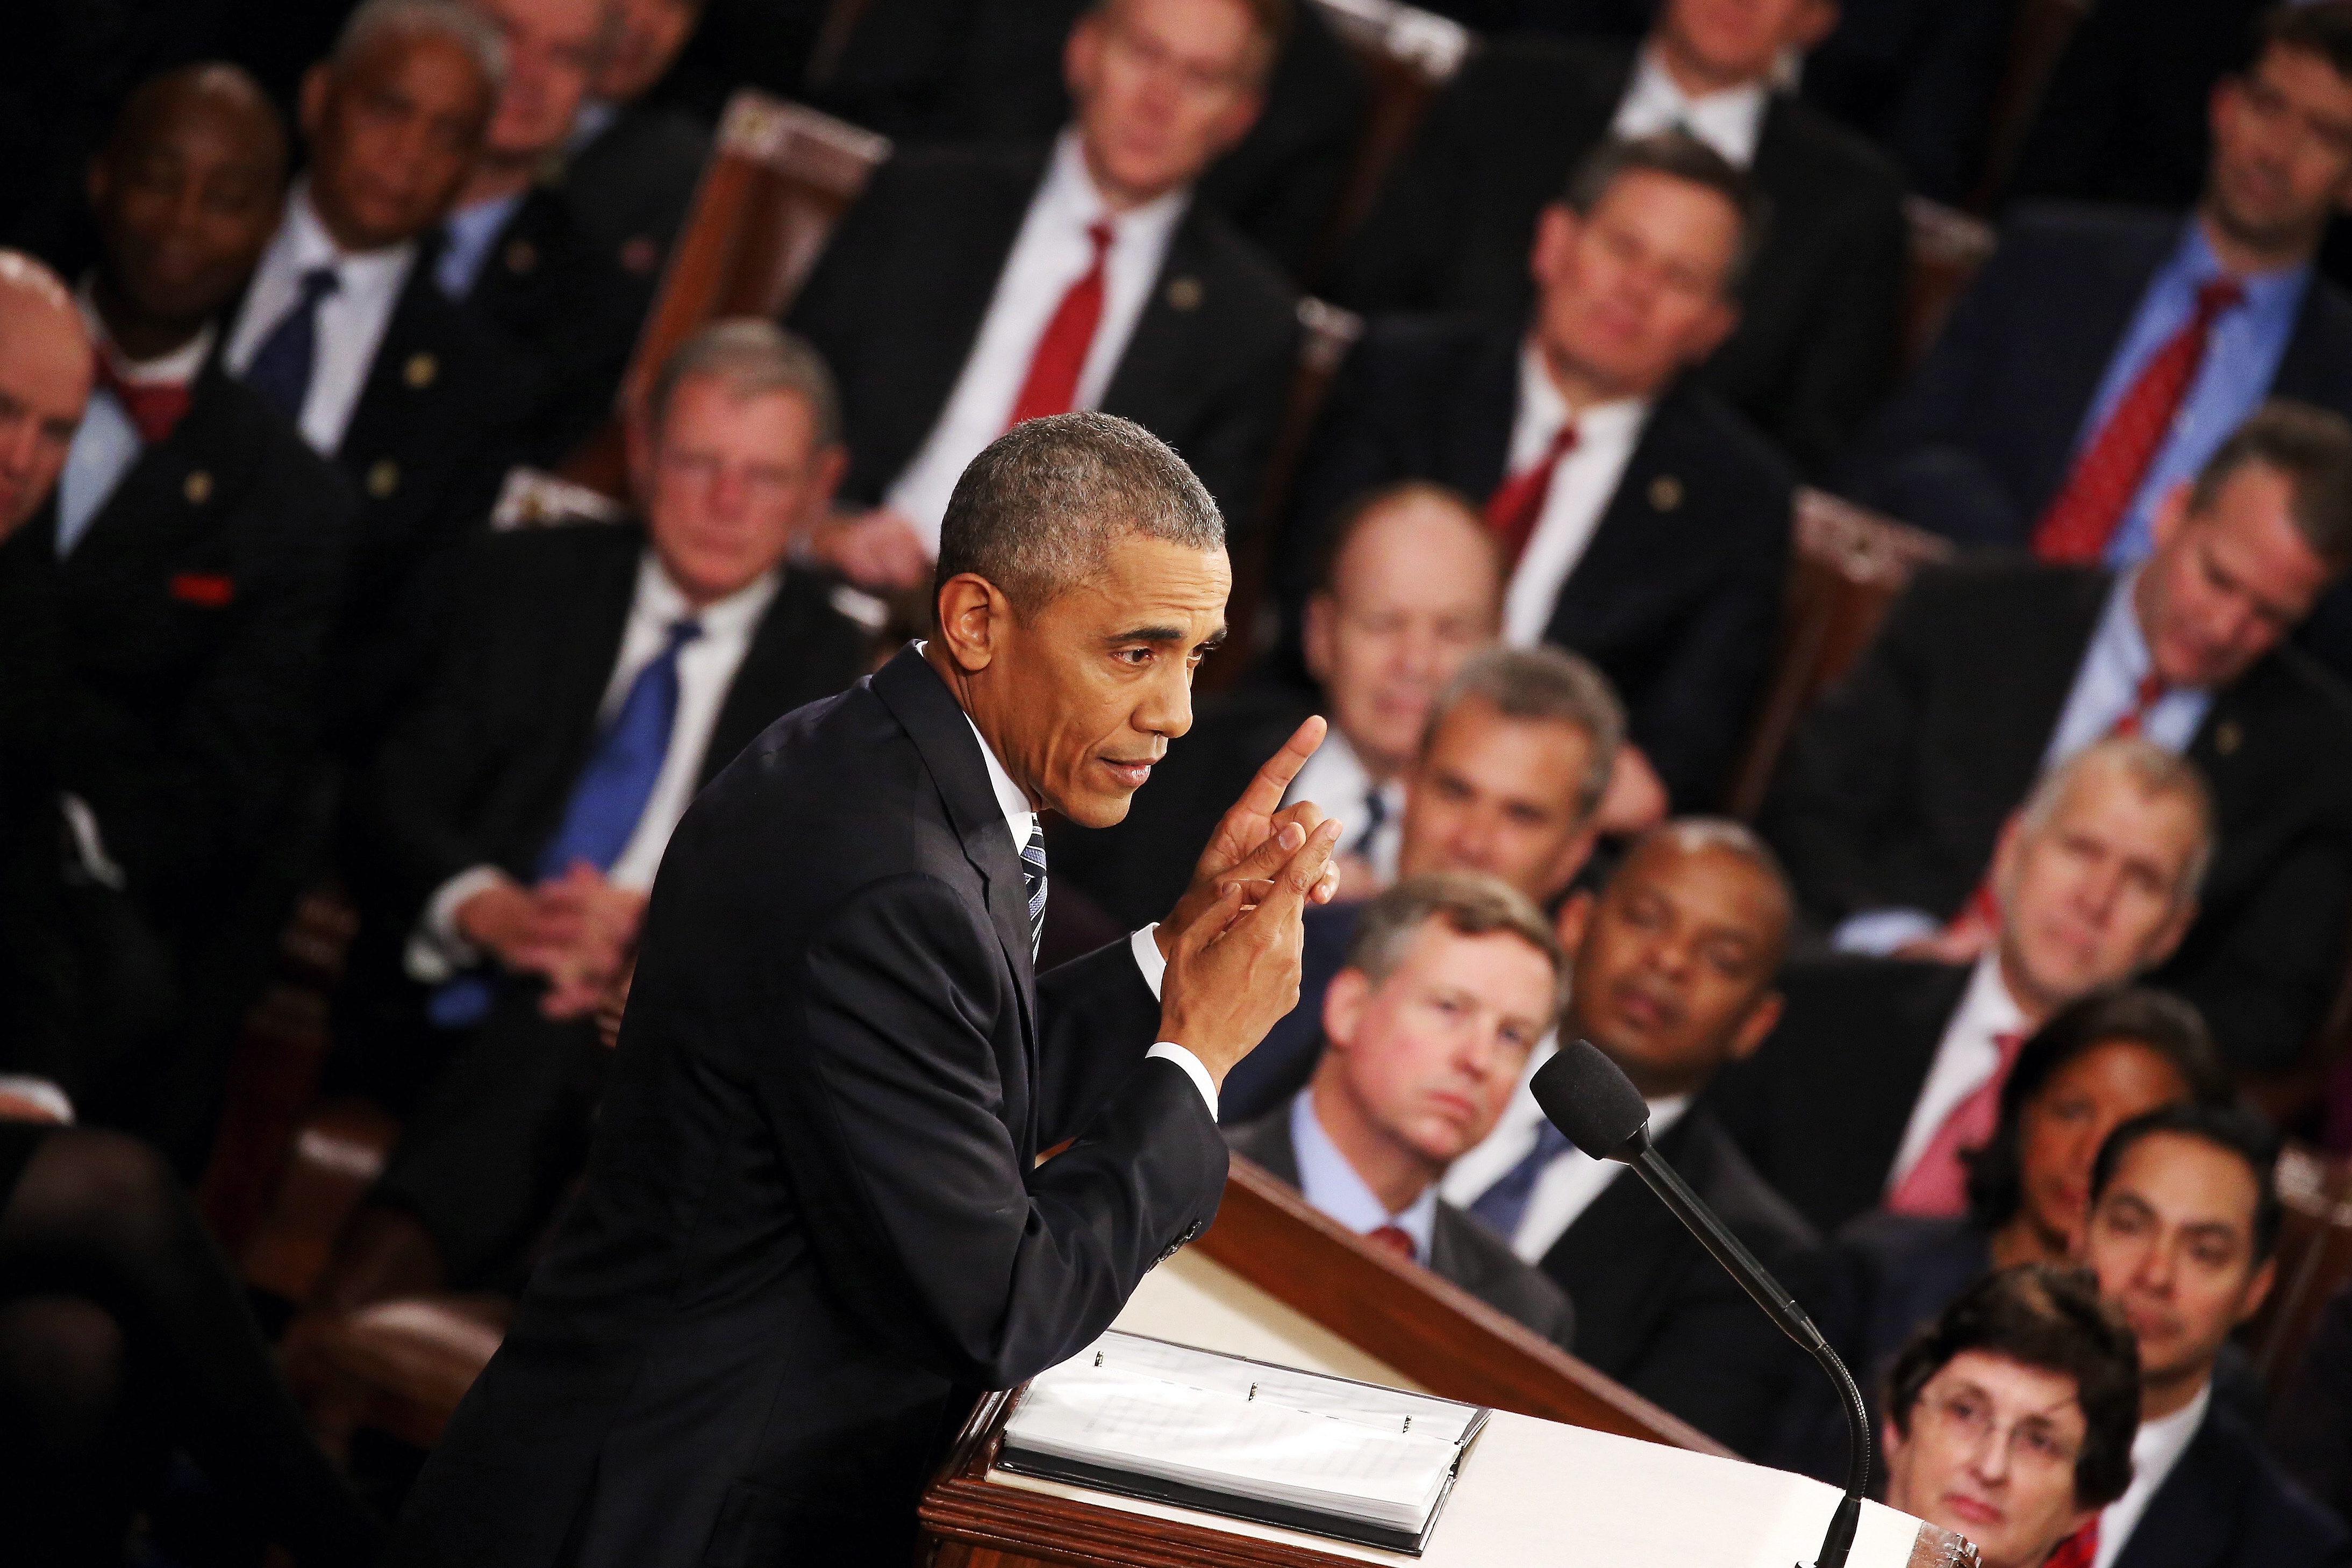 President Barack Obama gestures as he delivers the State of the Union speech before members of Congress in the House chamber of the U.S. Capitol on Jan. 12, 2016 in Washington.